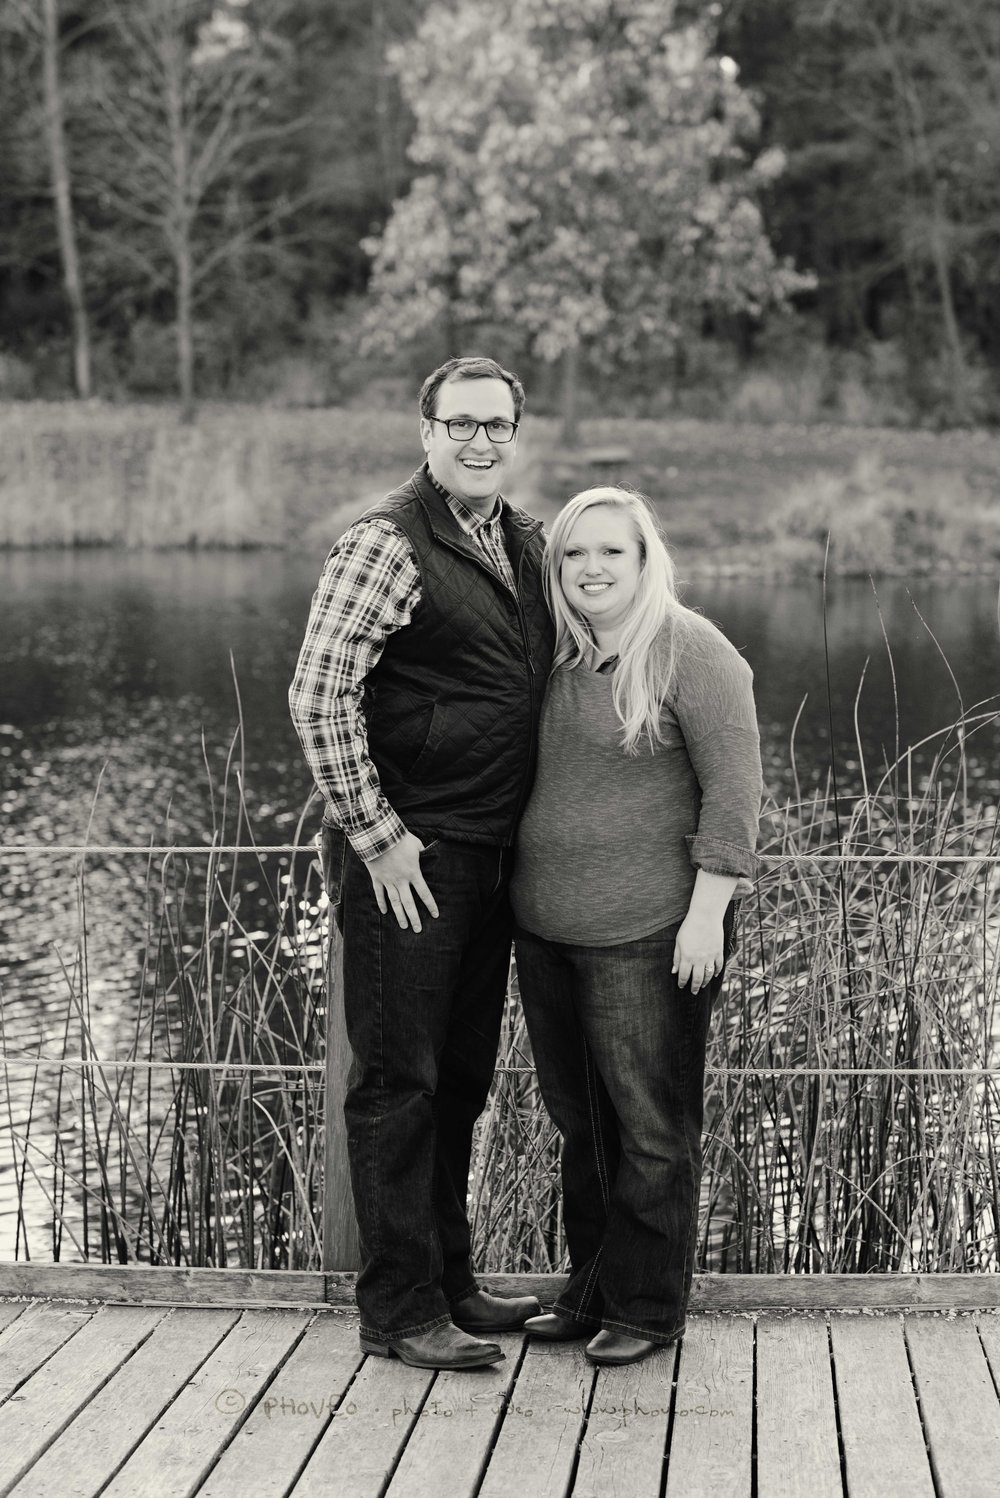 WM_20161113_Amy+Aaron_40bw.jpg